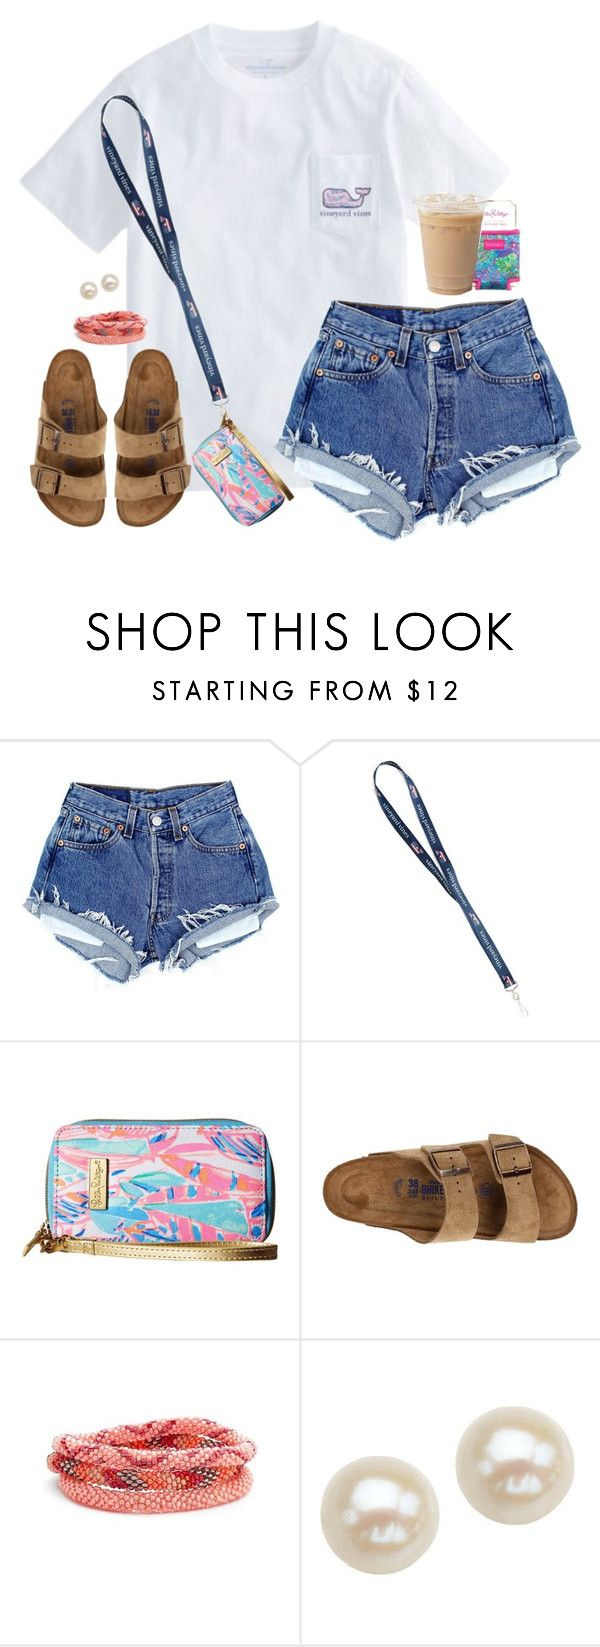 Diy Ing Some Jean Shorts Today Summer Outfits Fashion Cute